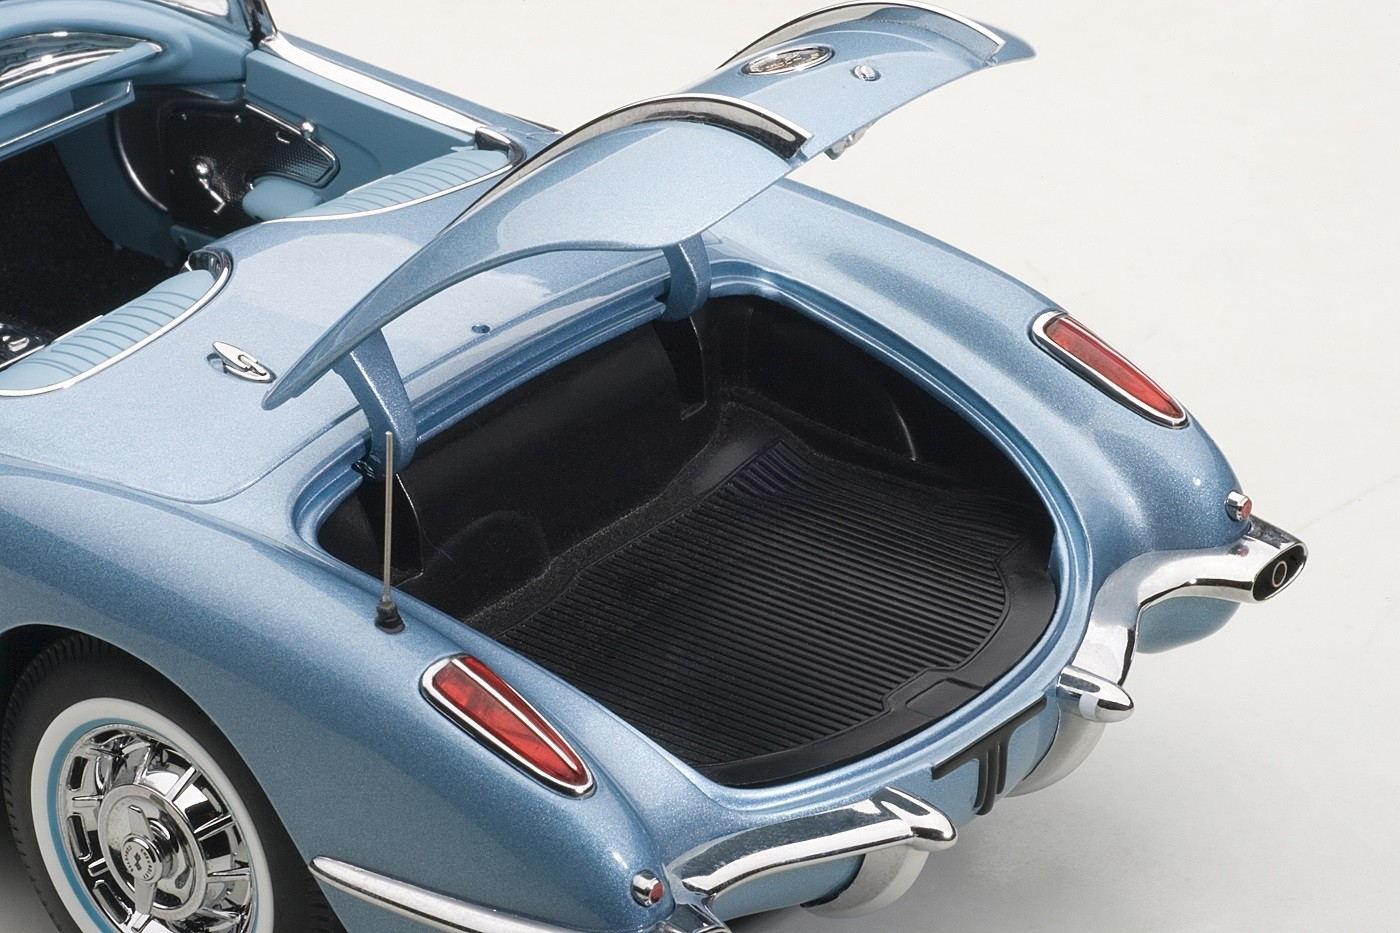 ۷۱۱۴۶_chevrolet_corvette_1958_silver_blue_71146_die-cast_autoart_scale_1-18_convertible_trunk